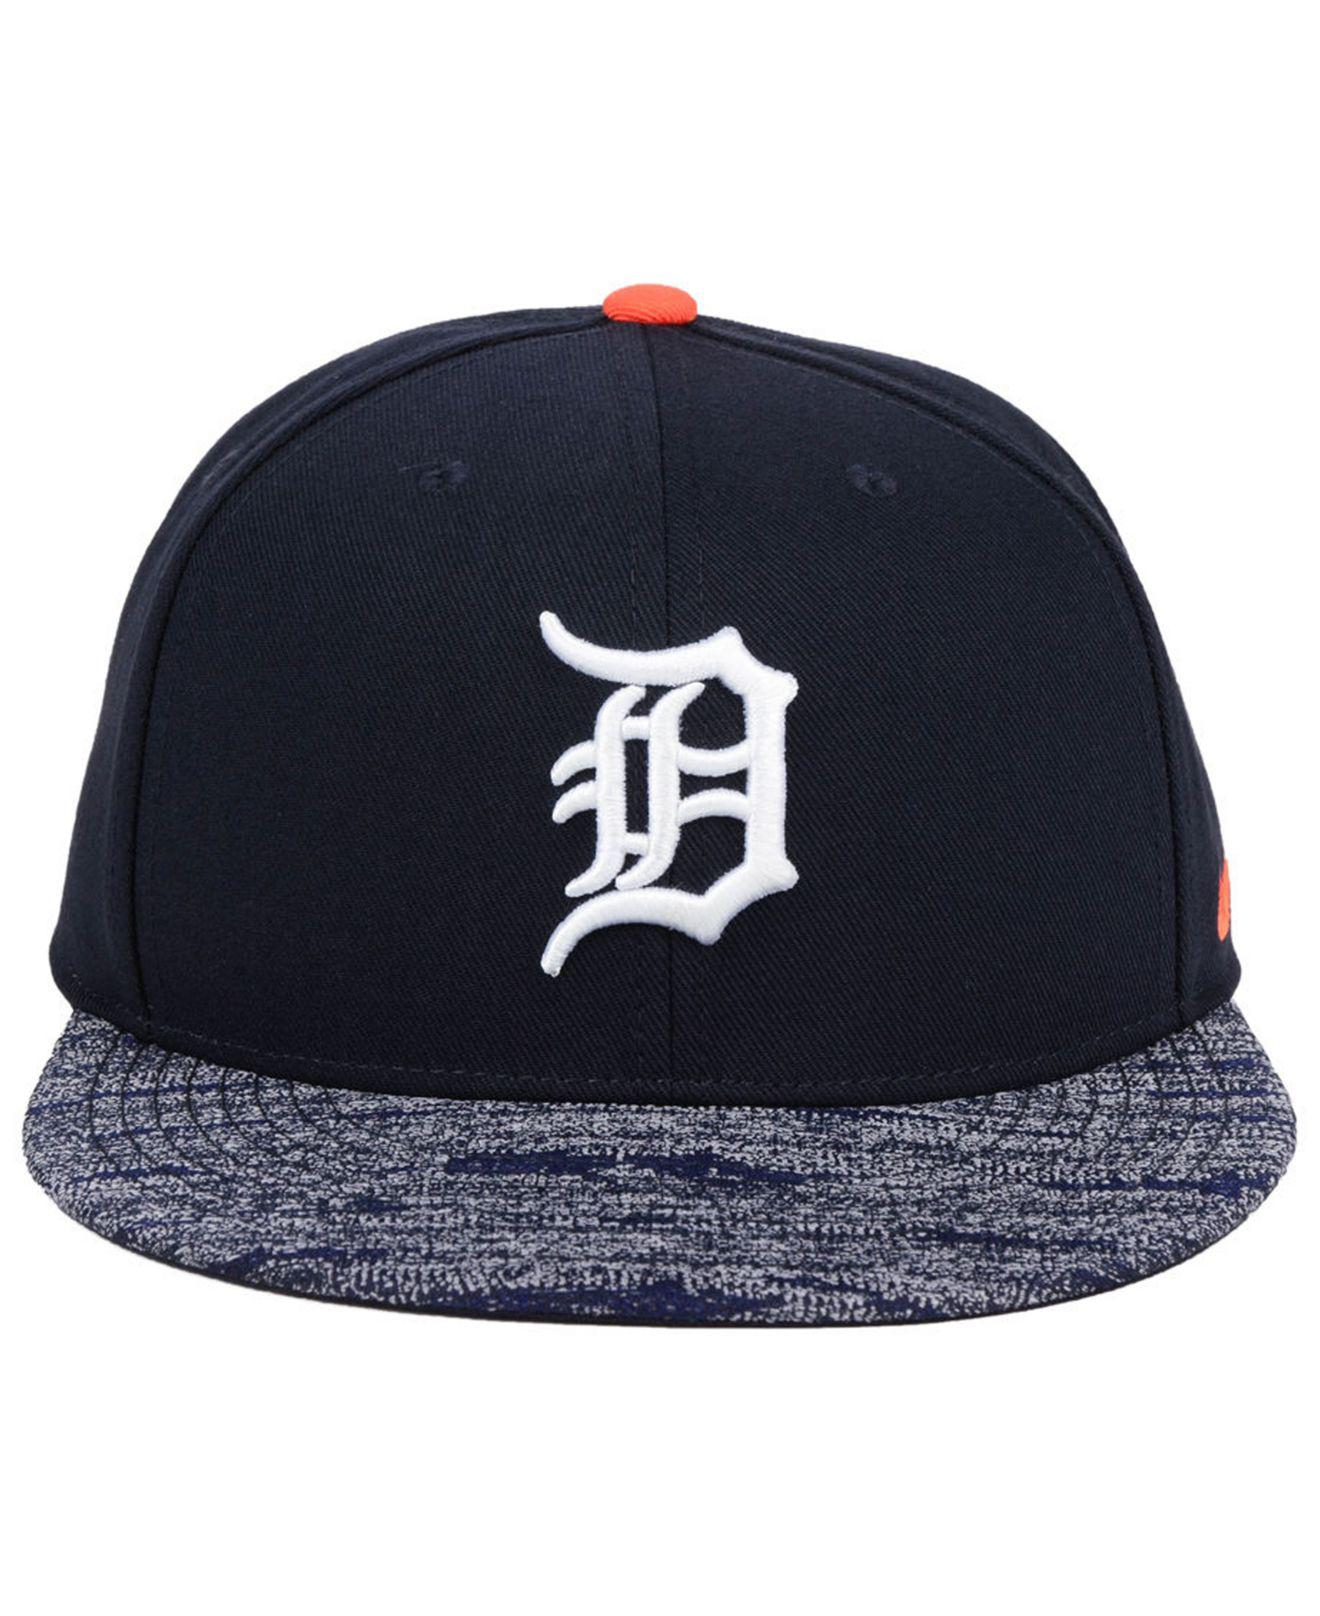 wholesale dealer 0b97e f754e Lyst - Nike Detroit Tigers Reverse New Day Snapback Cap in Blue for Men